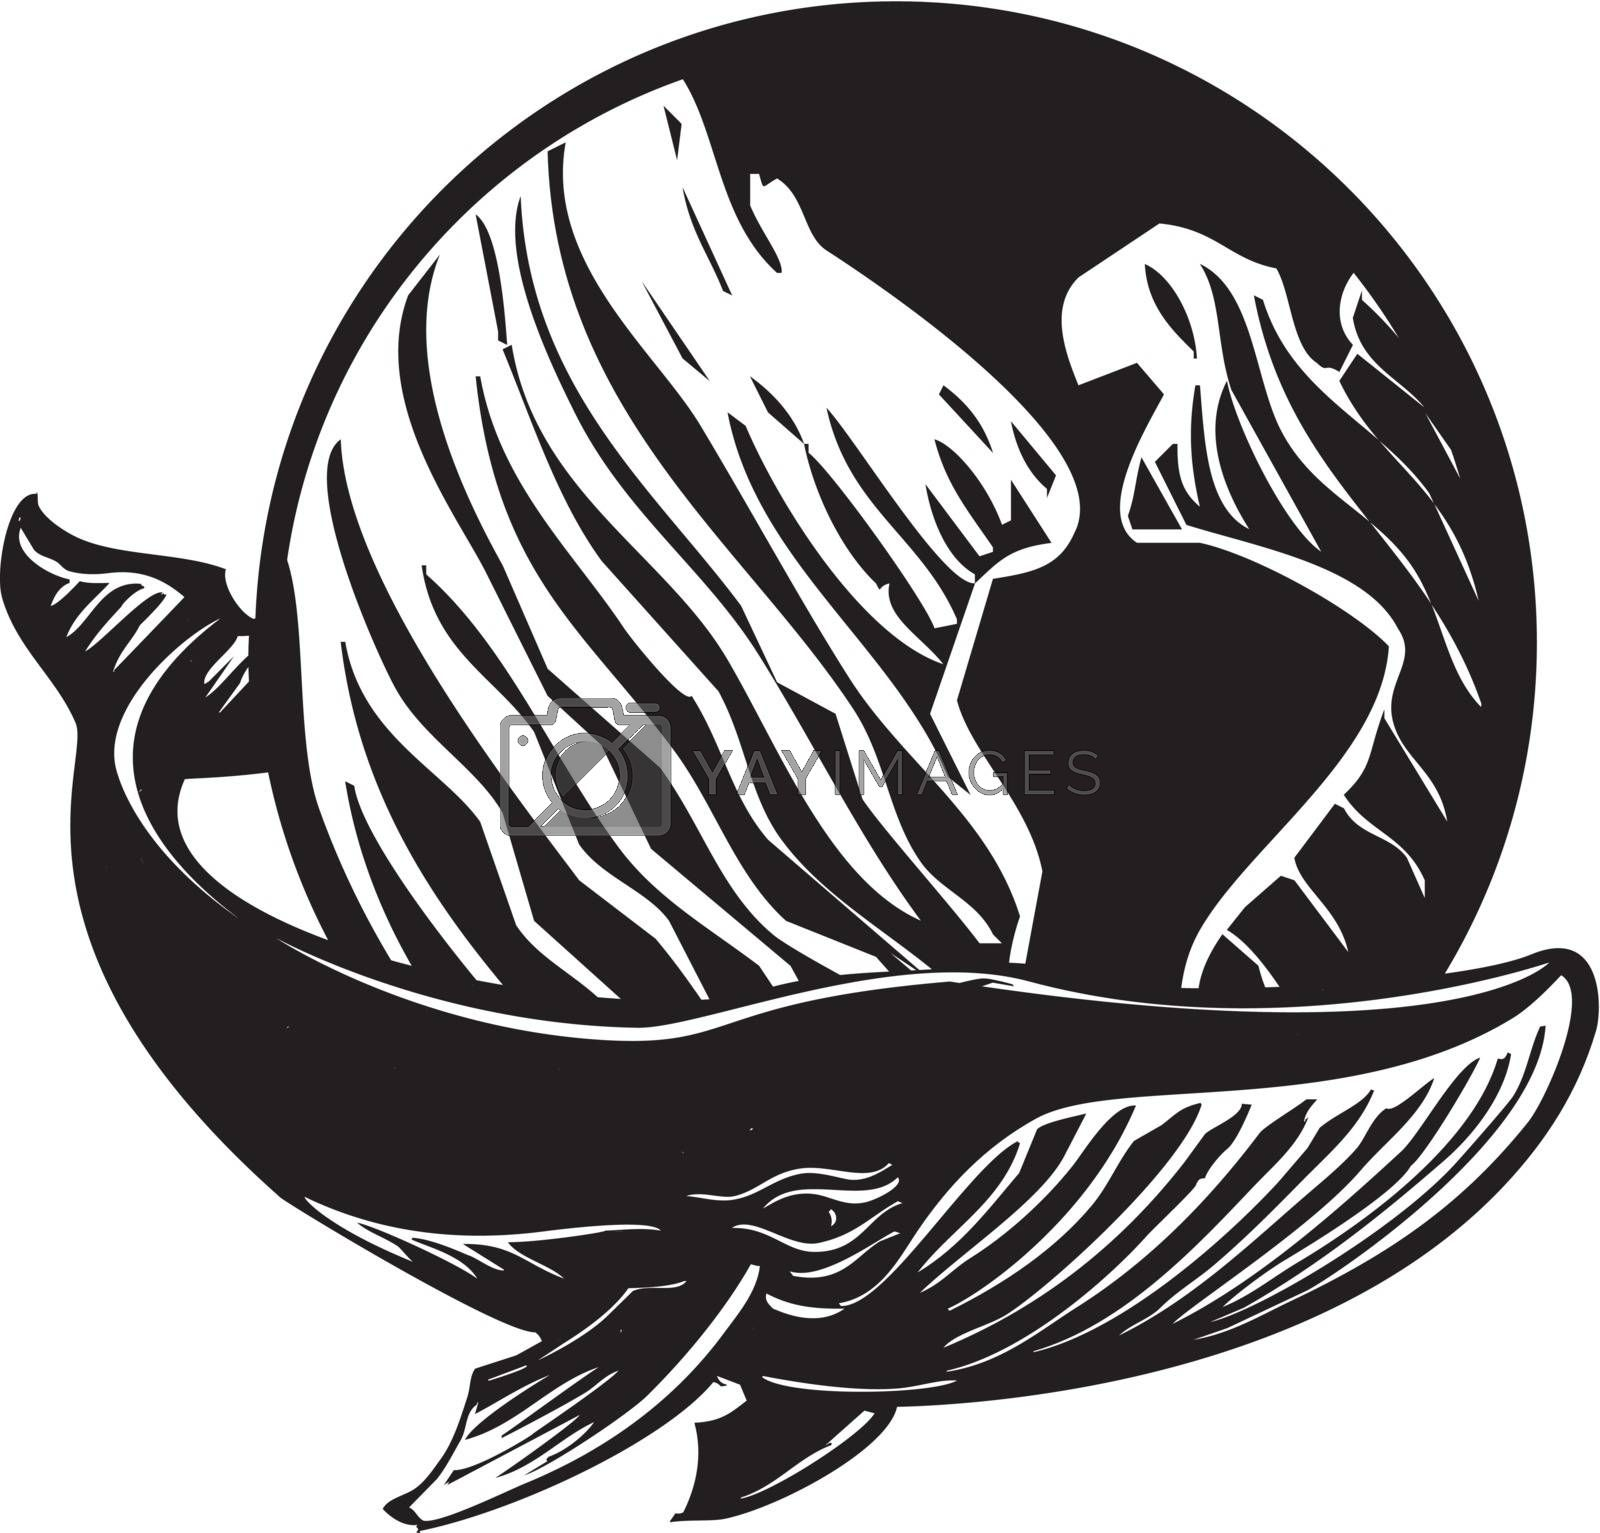 Woodcut style image of a whale and the Earth.